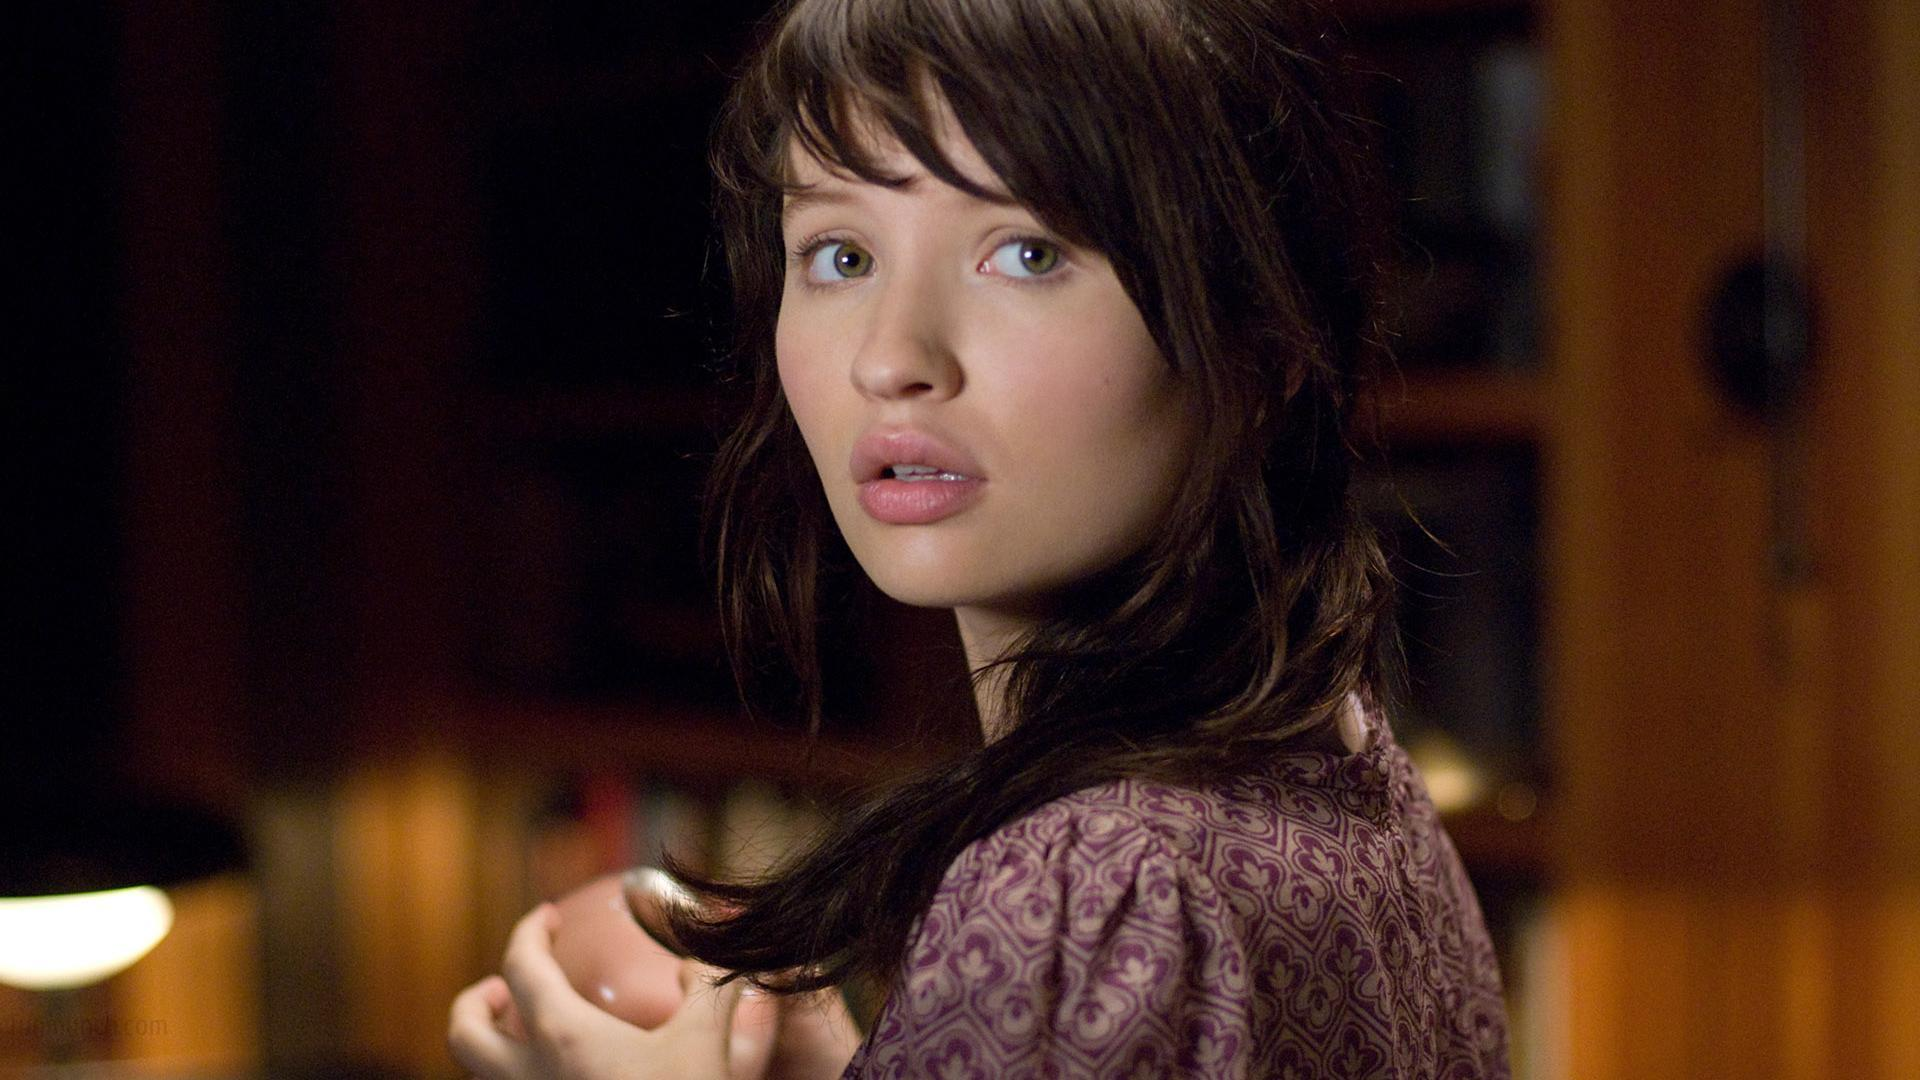 Emily Browning backdrop wallpaper